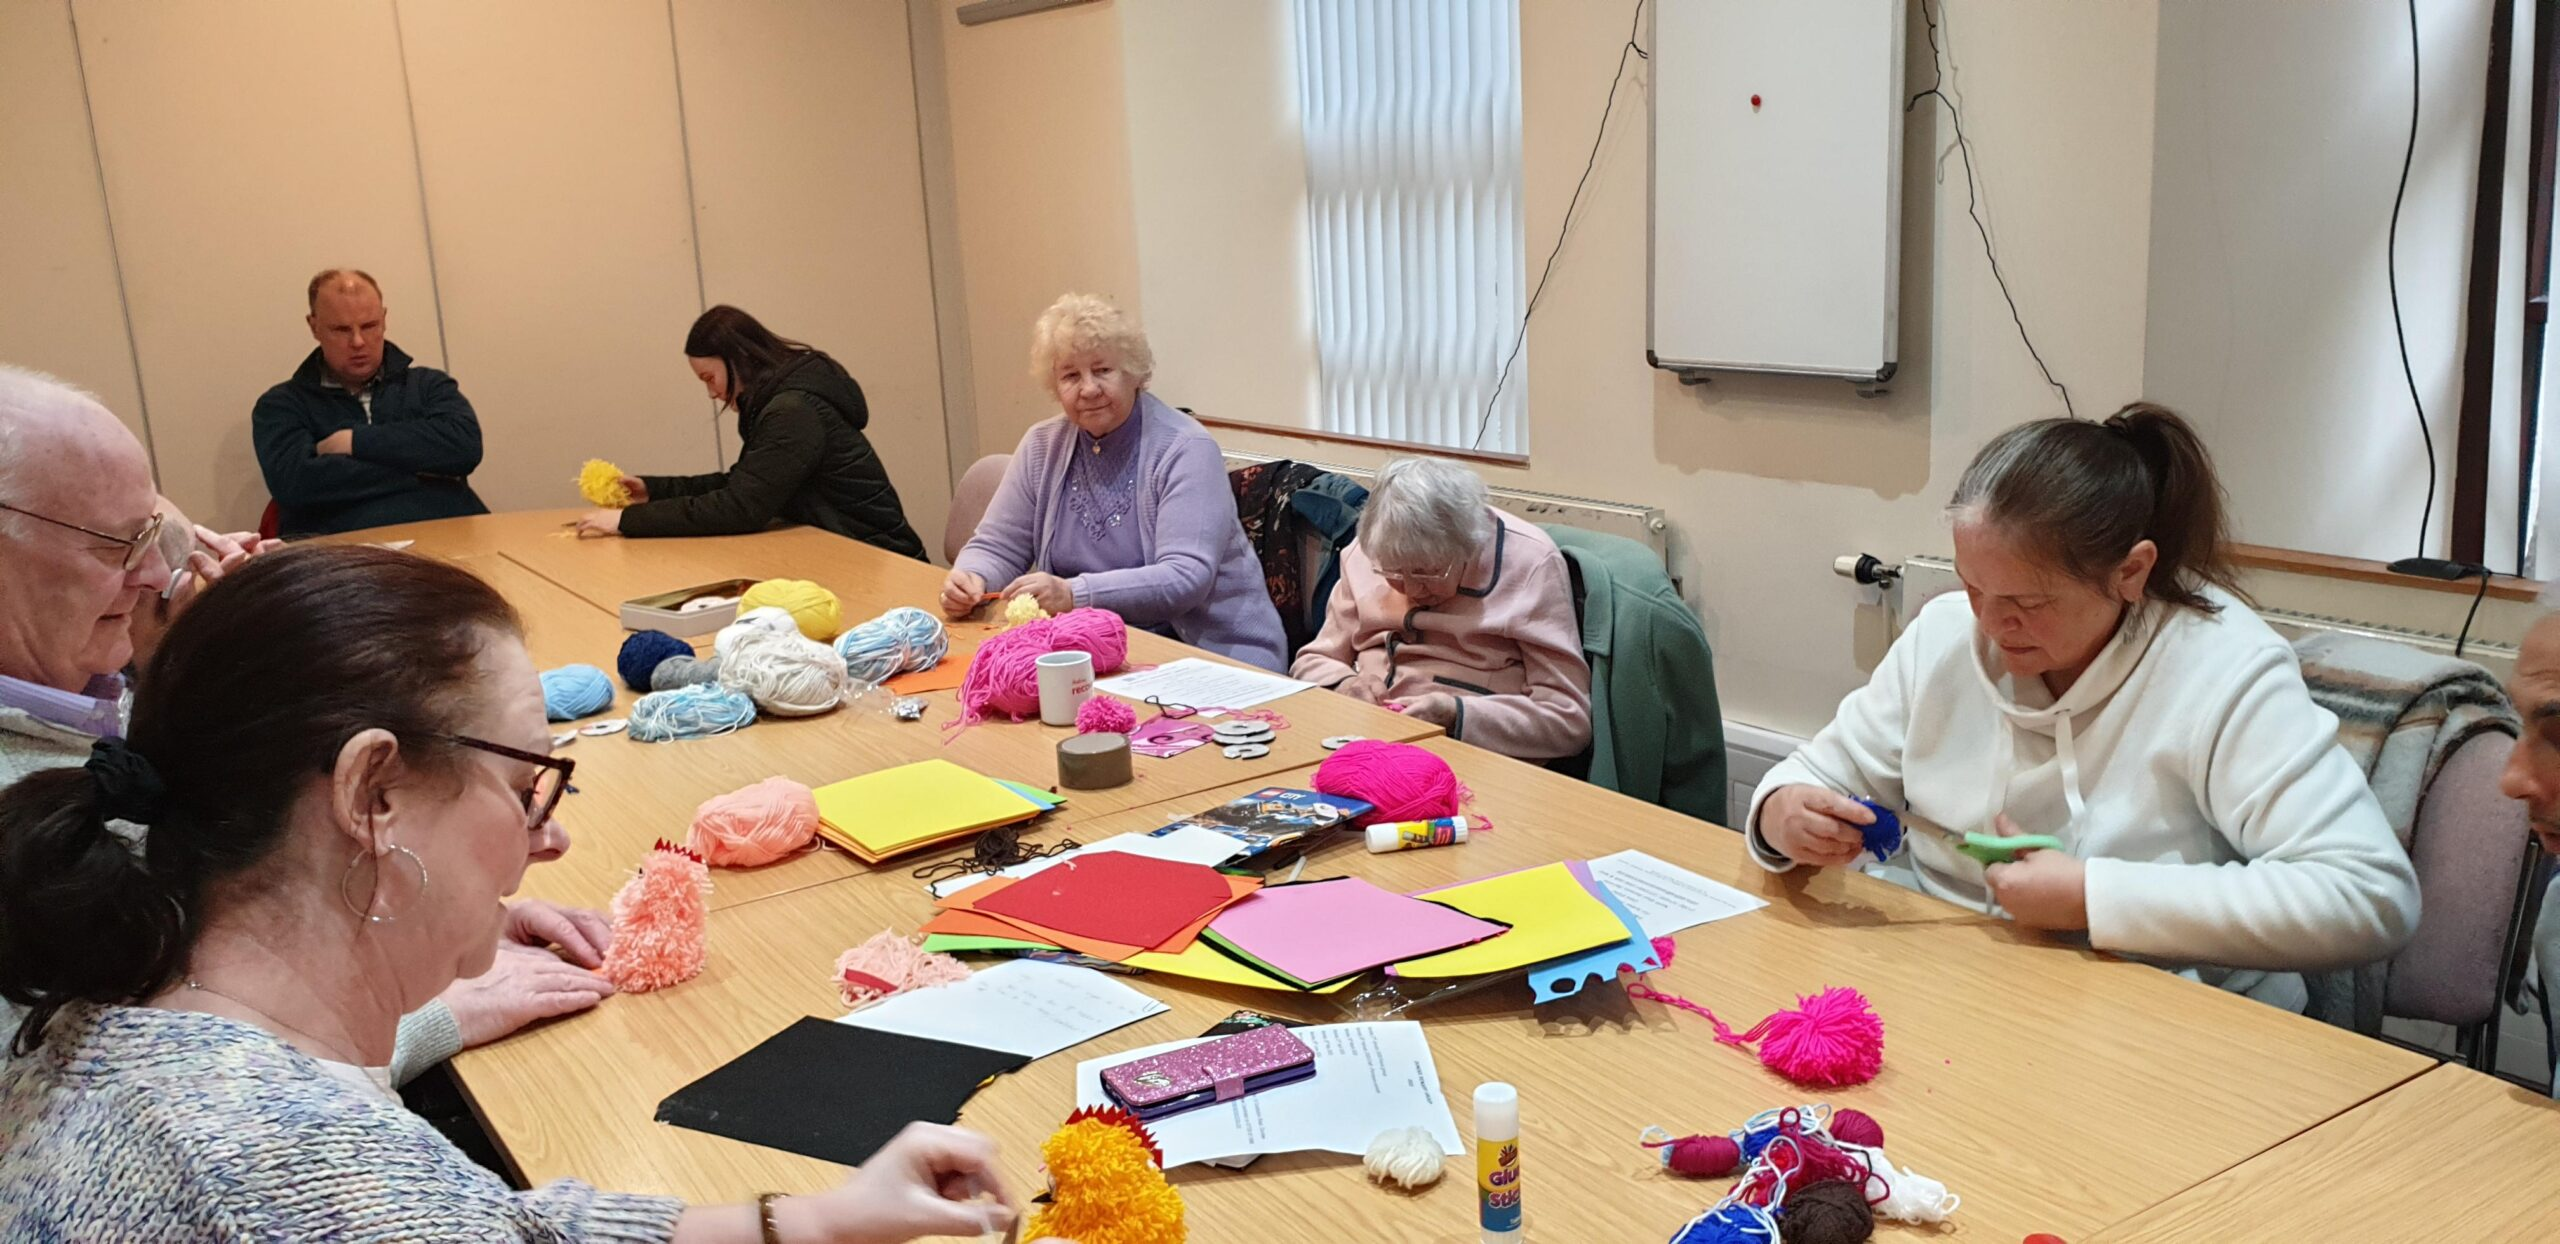 Group of adults sit round table doing crafts